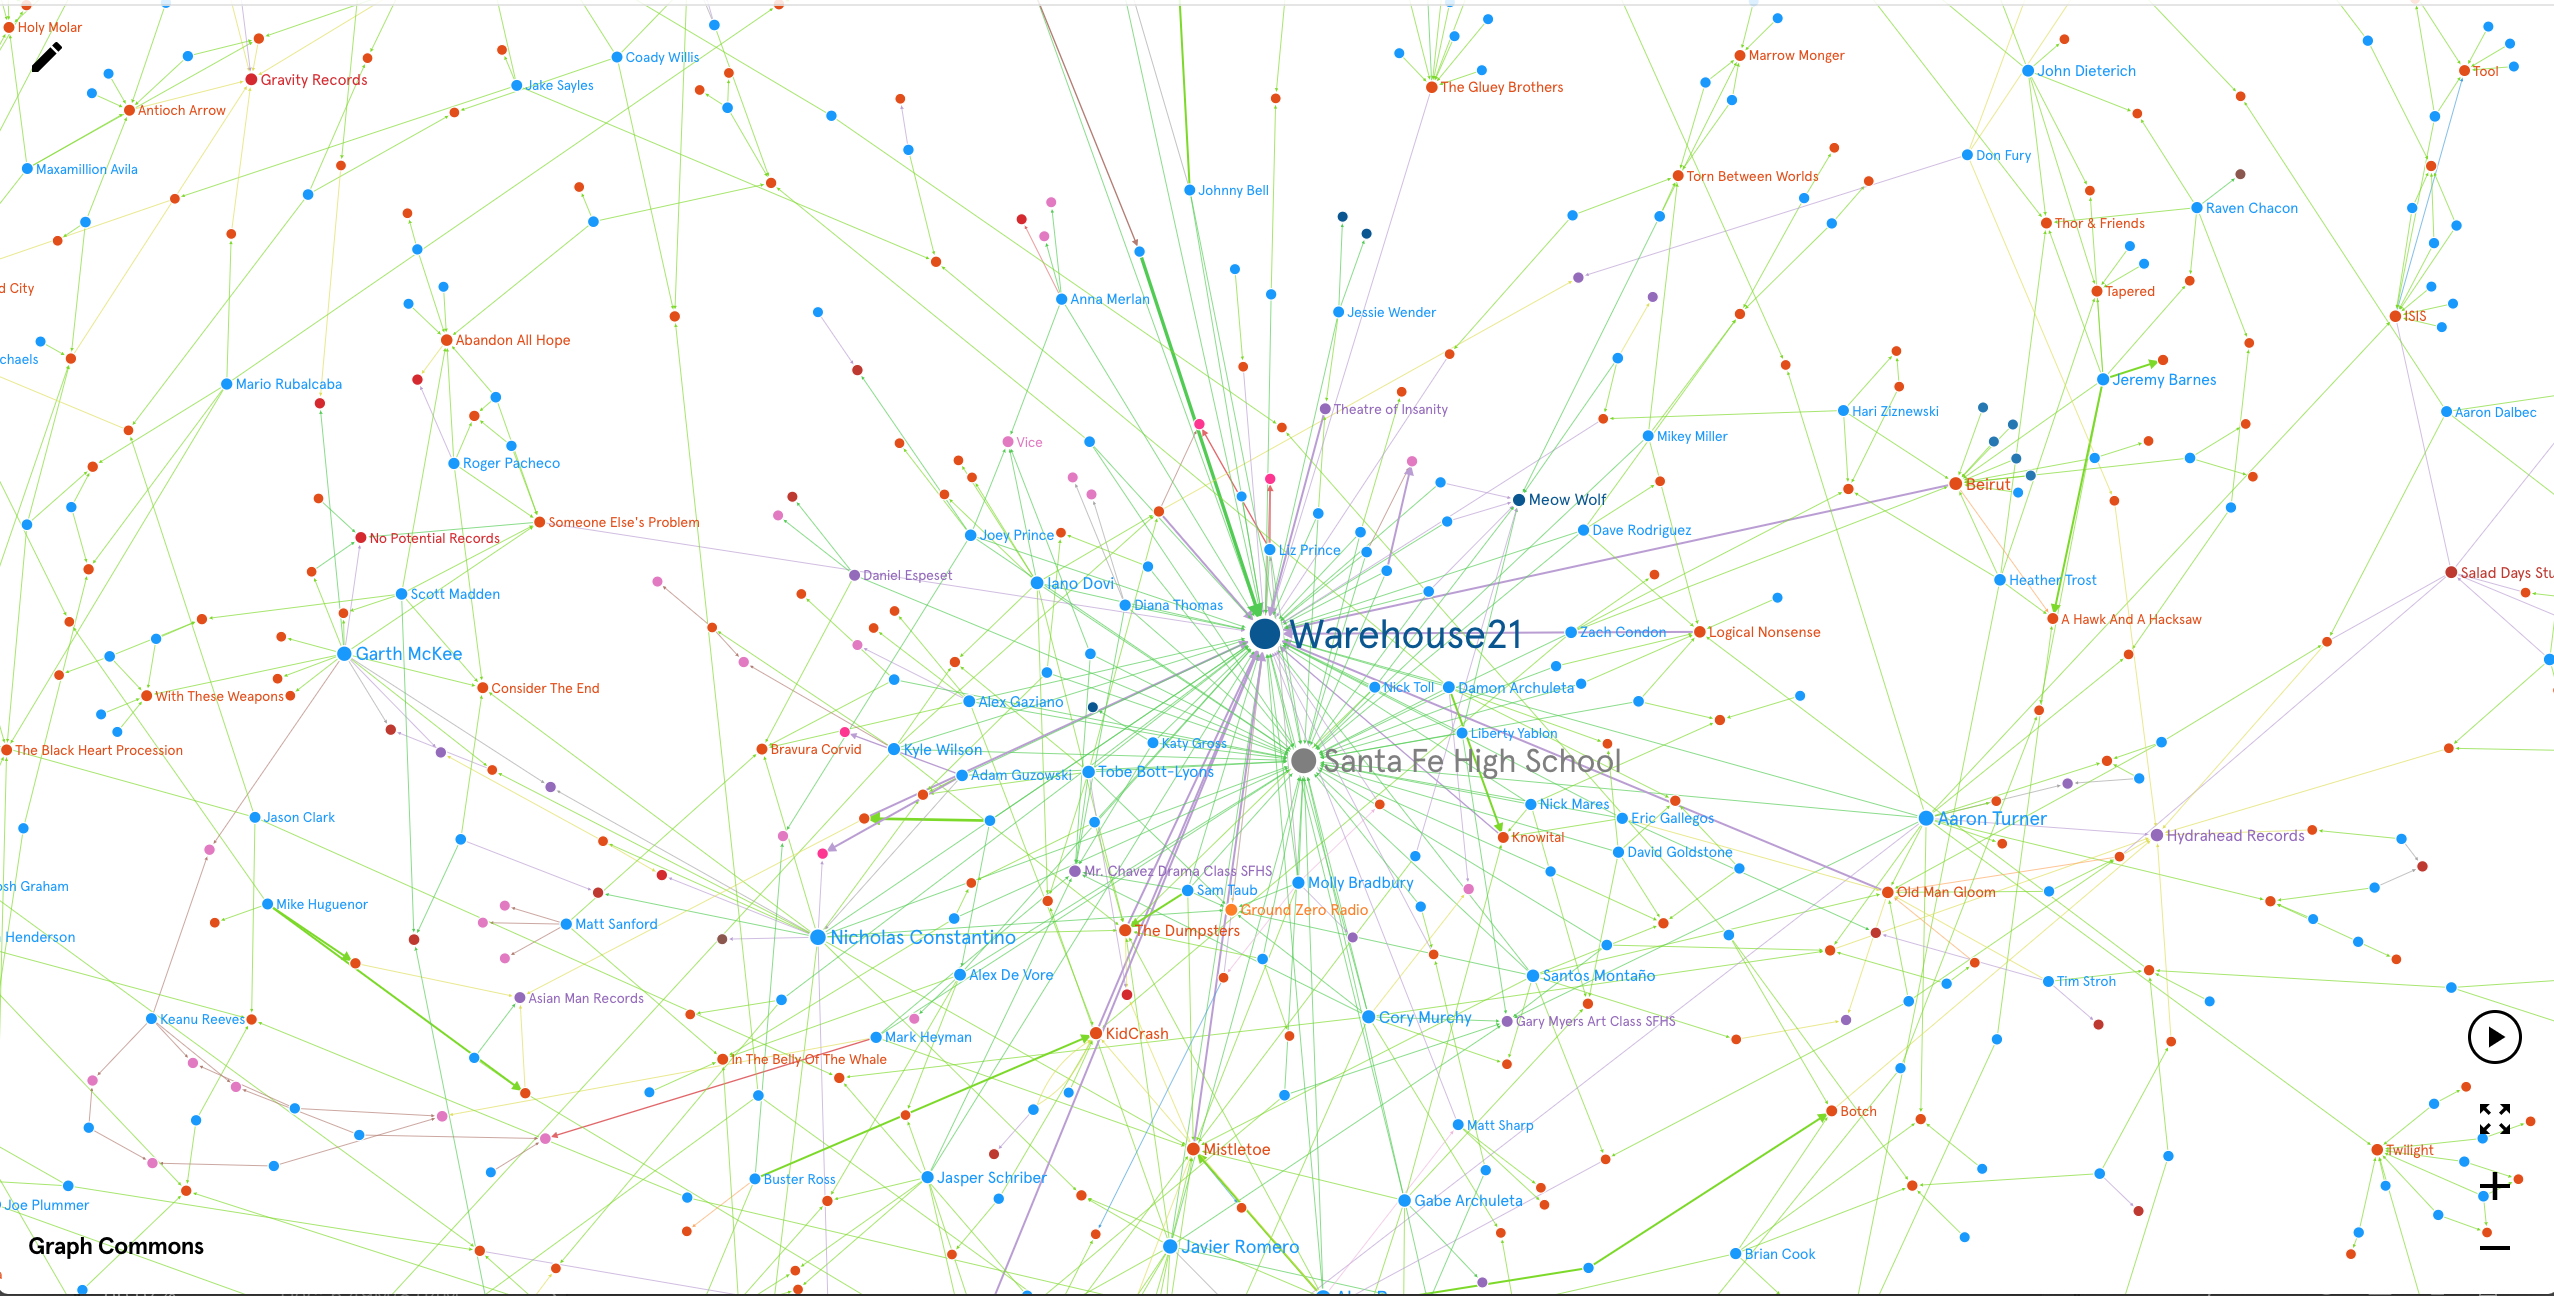 Graph Commons Network Graph of Warehouse 21 Connections